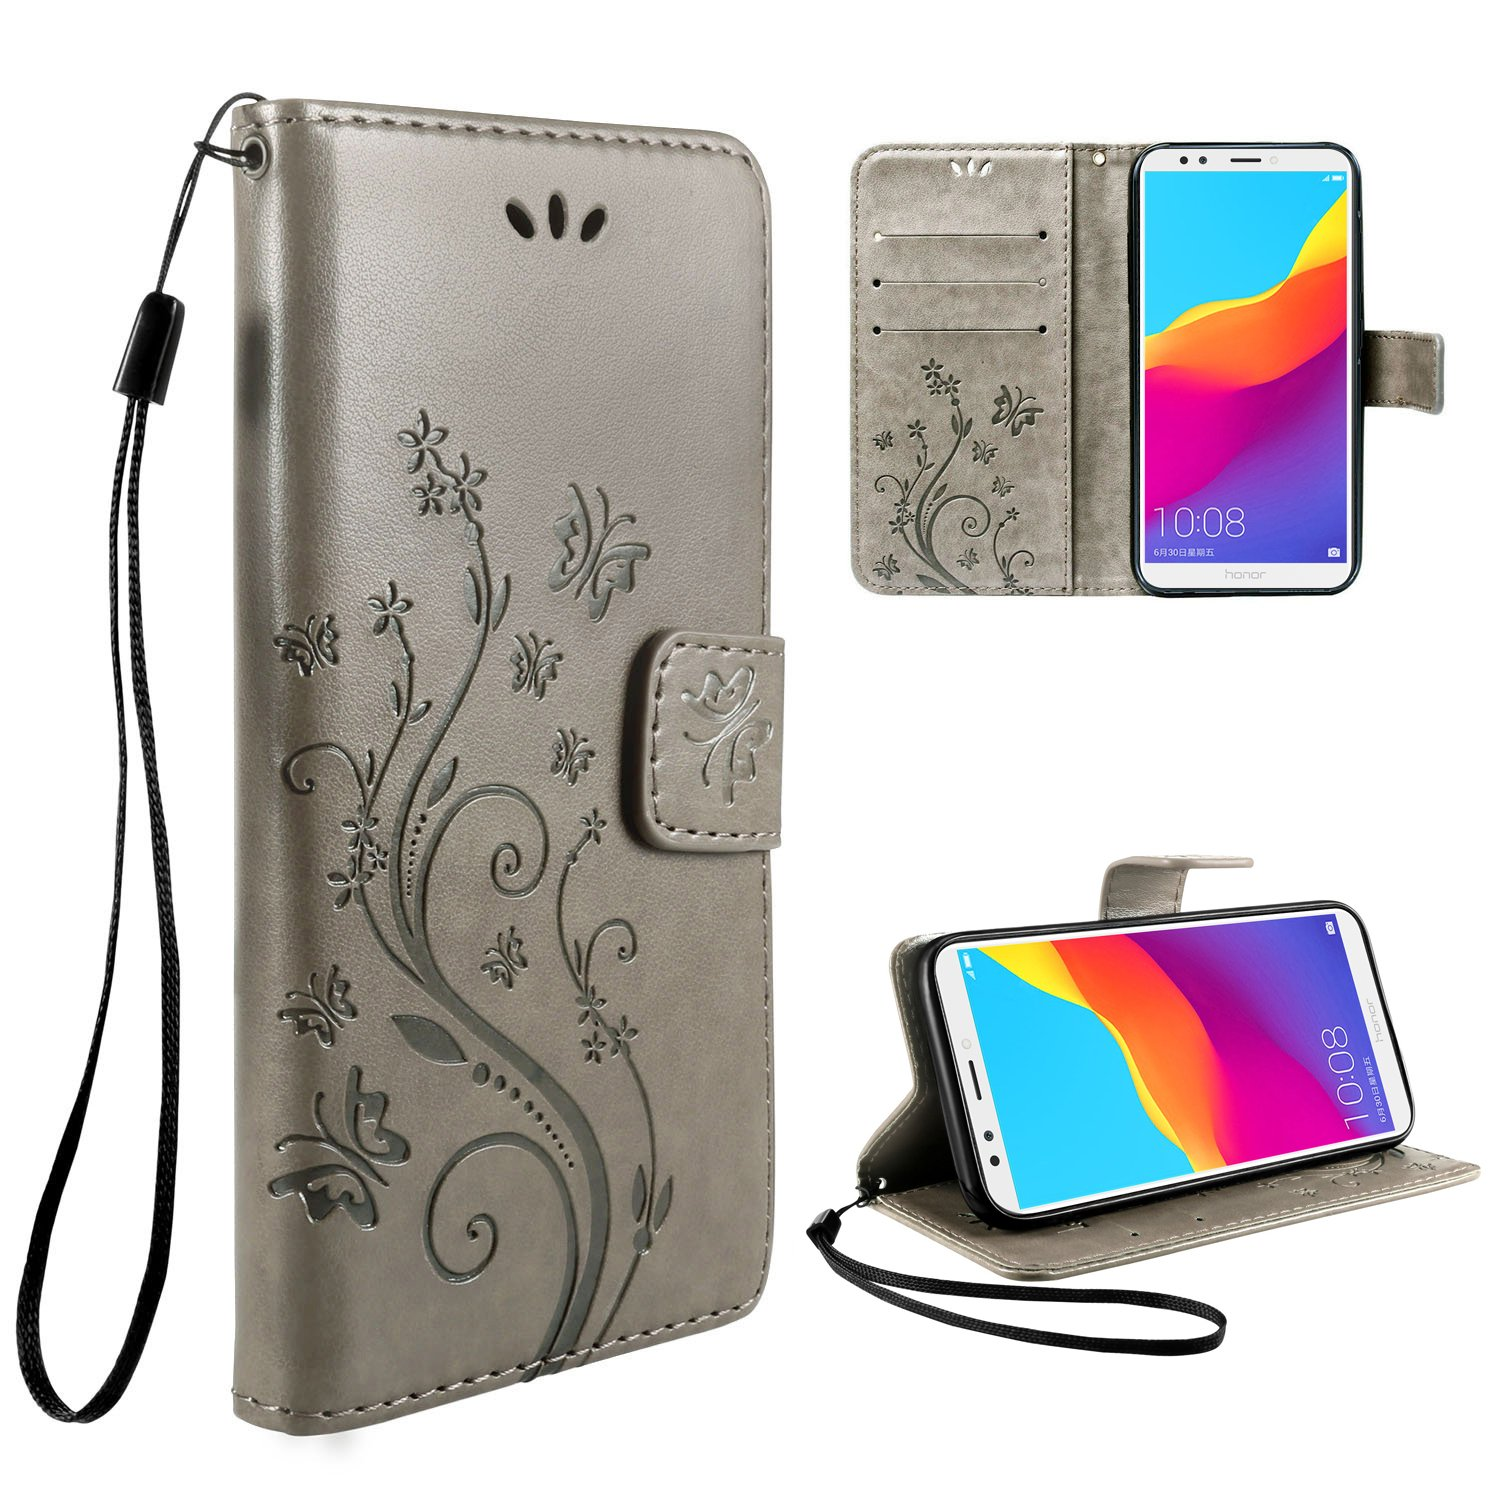 Leathlux Wallet Cover Huawei Honor 7C, Custodia Huawei Honor 7C - Retro Flowers Design Pattern Custodia In Pelle Con Wallet Case Cover Per Huawei Honor 7C 5.99' Grigio PpIiNnKk pi-a478